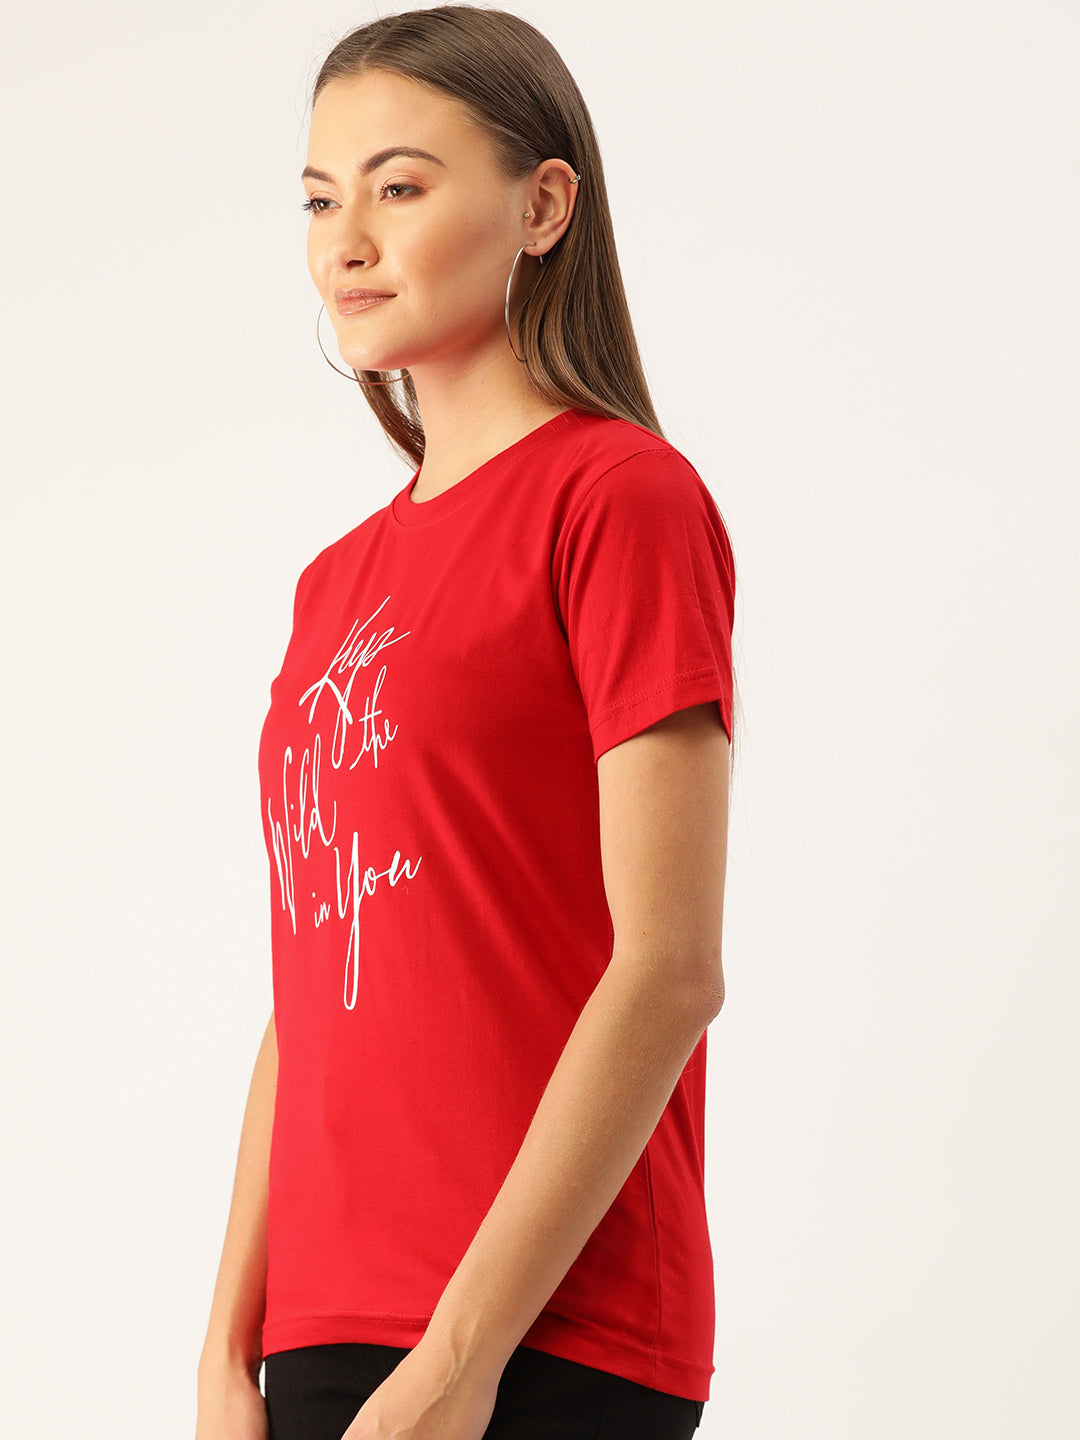 keep The Wild In U Red T-Shirt